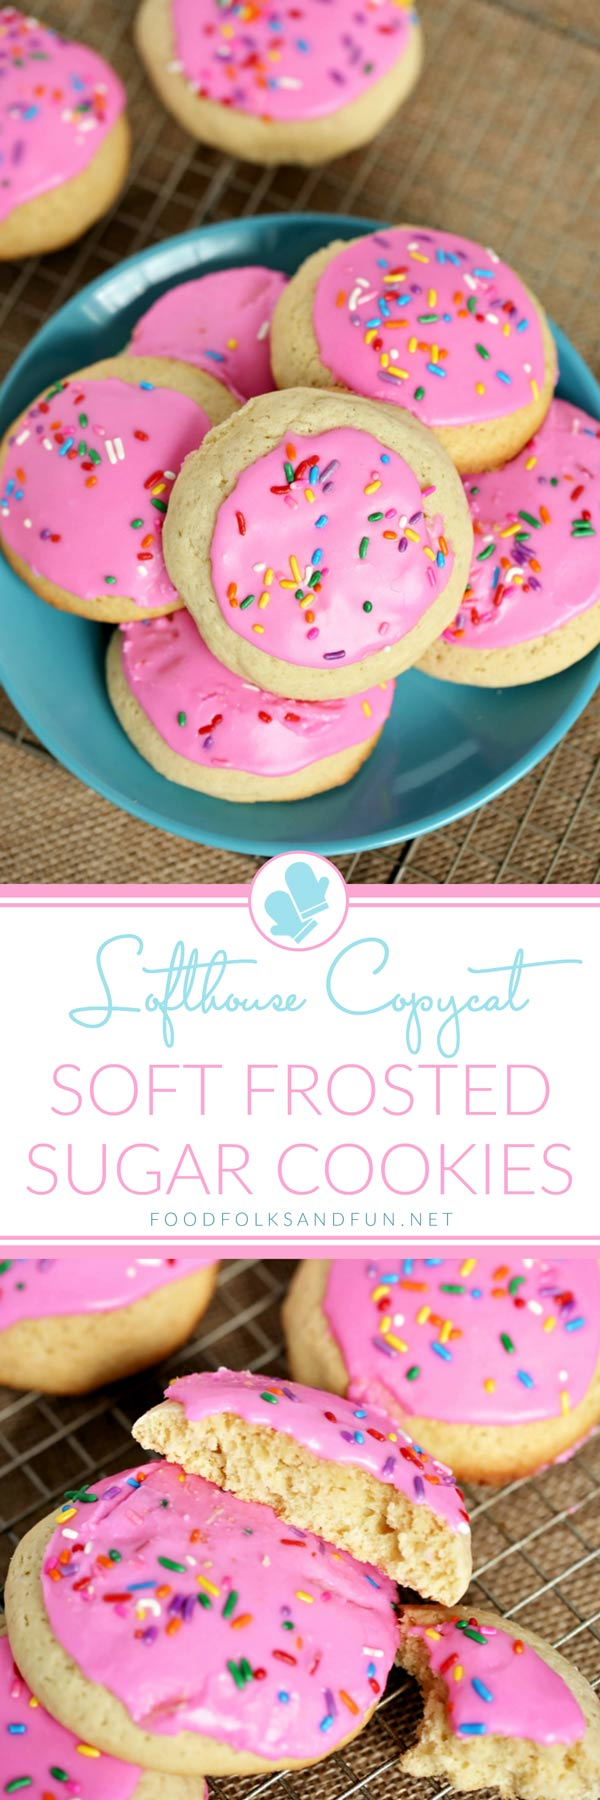 Soft Frosted Sugar Cookies Recipe - a Lofthouse Copycat Recipe